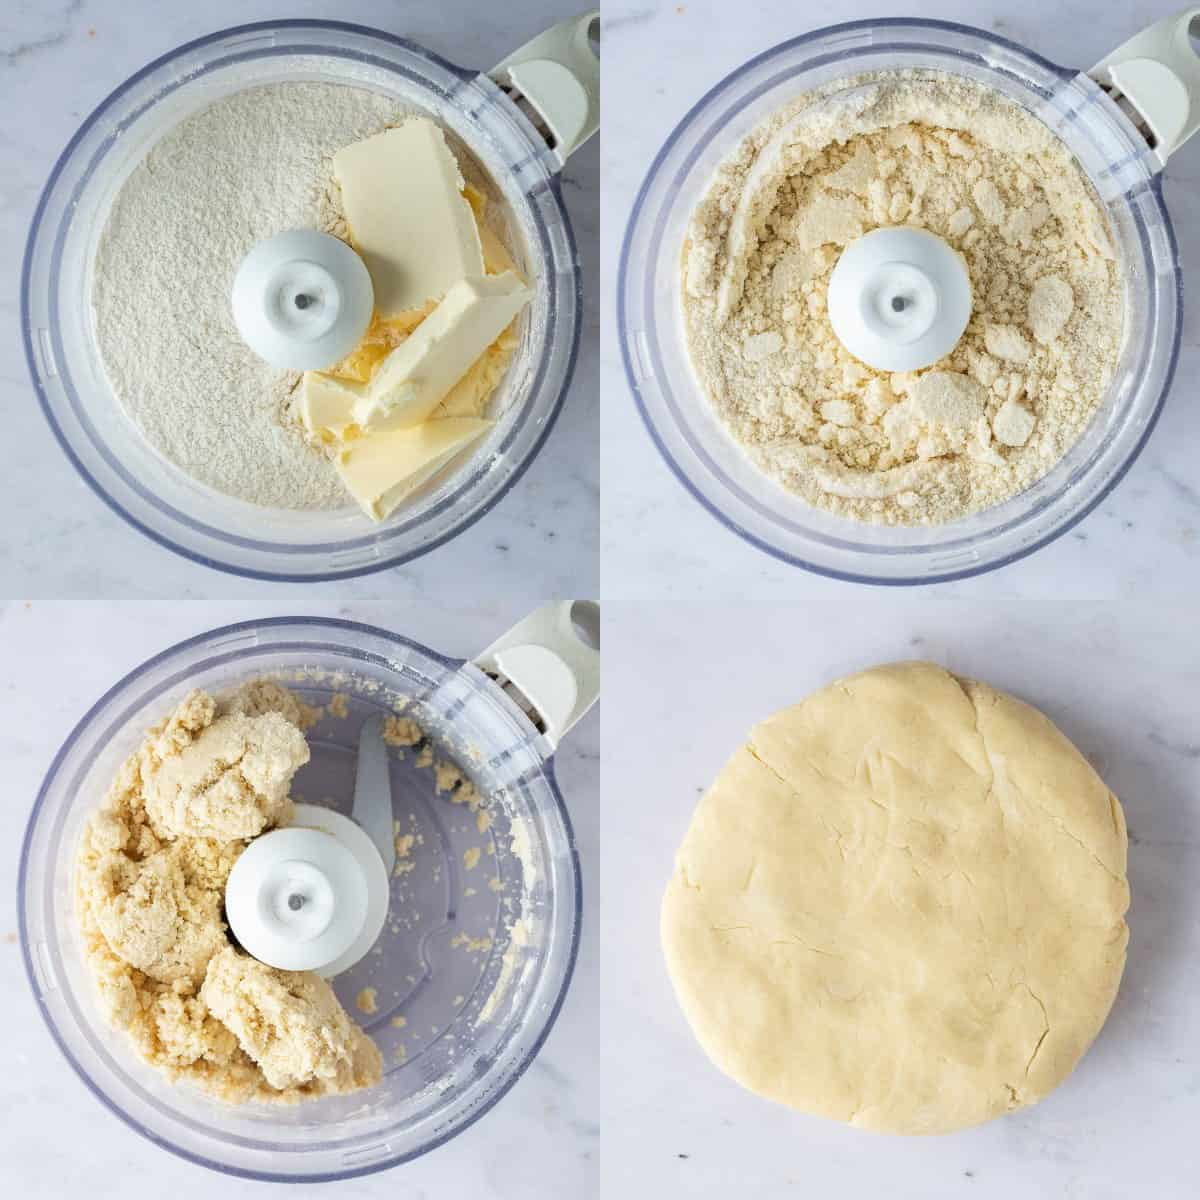 step 1 - making the pastry